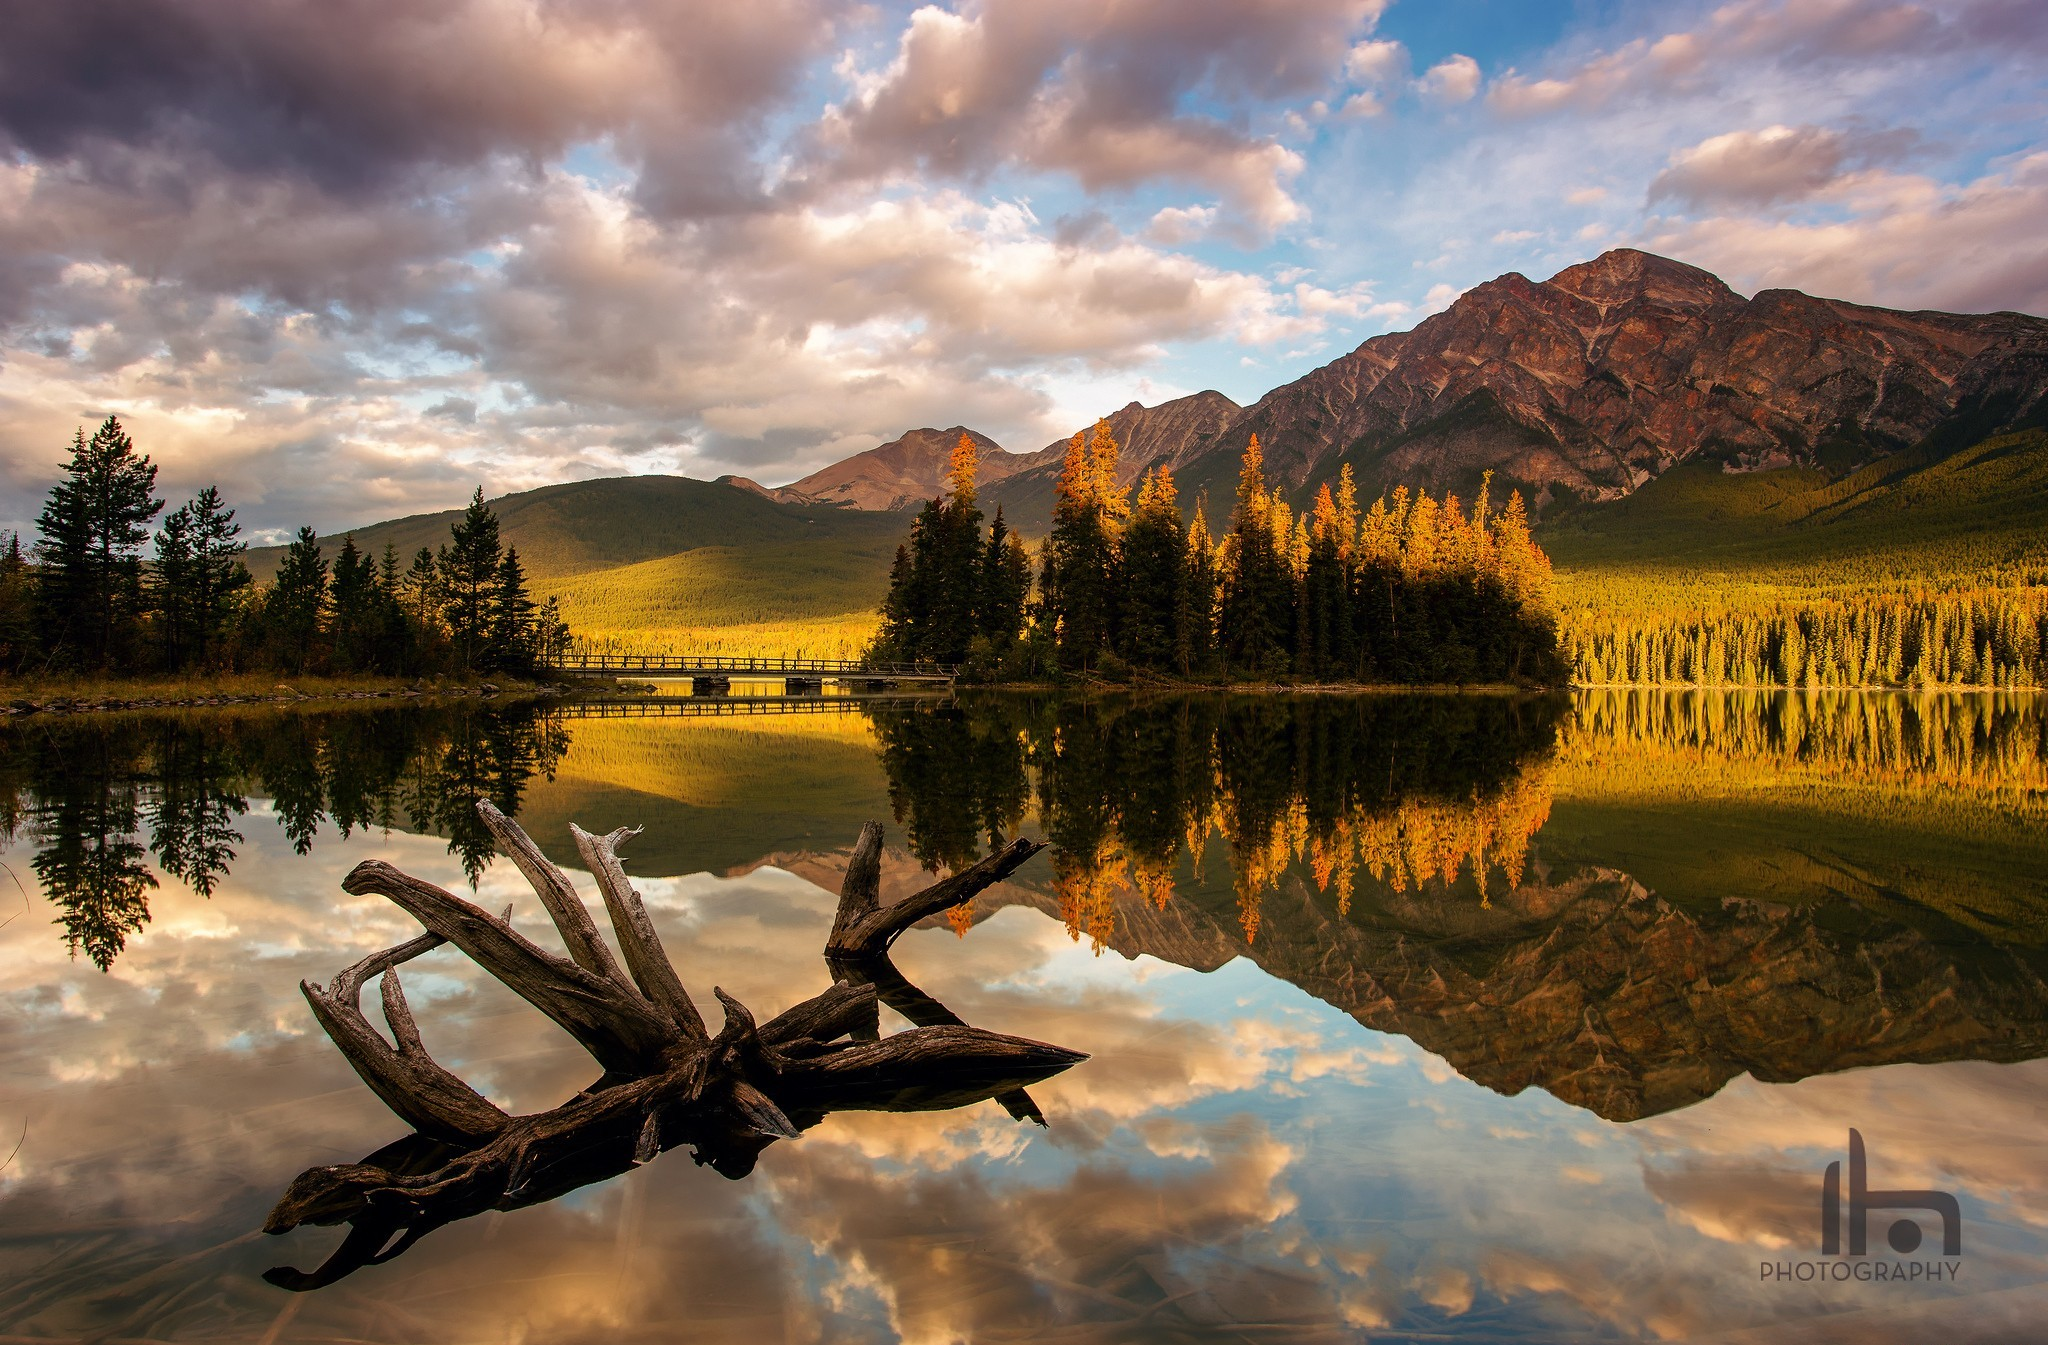 Fall Foliage Iphone Wallpaper Jasper National Park Wallpapers Pictures Images